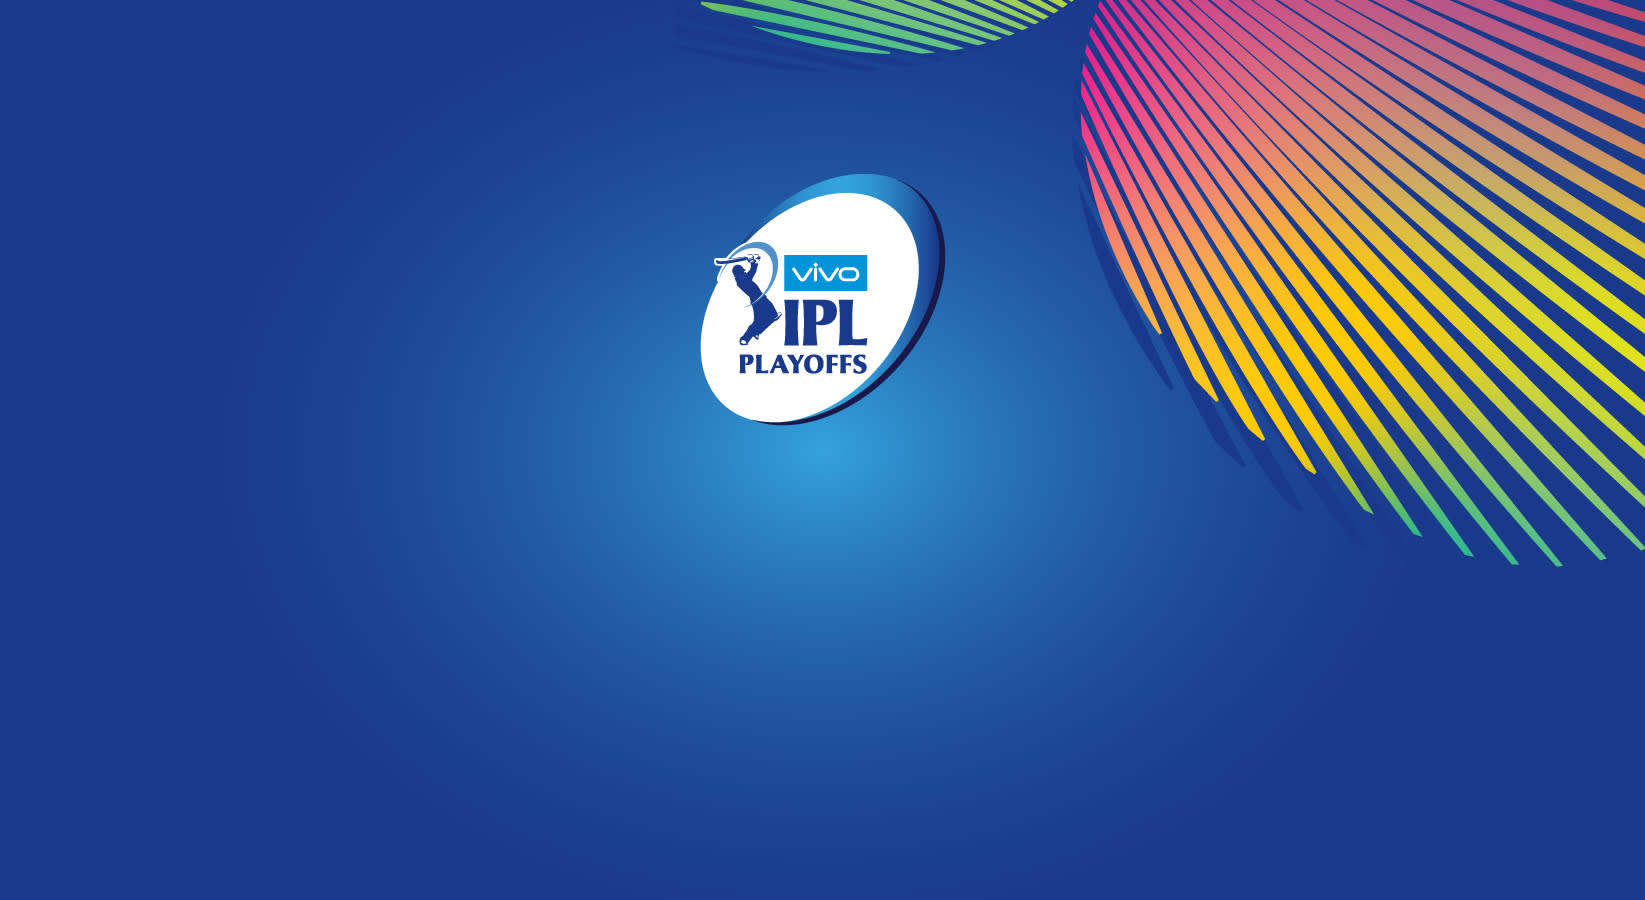 VIVO Indian Premier League (IPL): Sign up for updates!